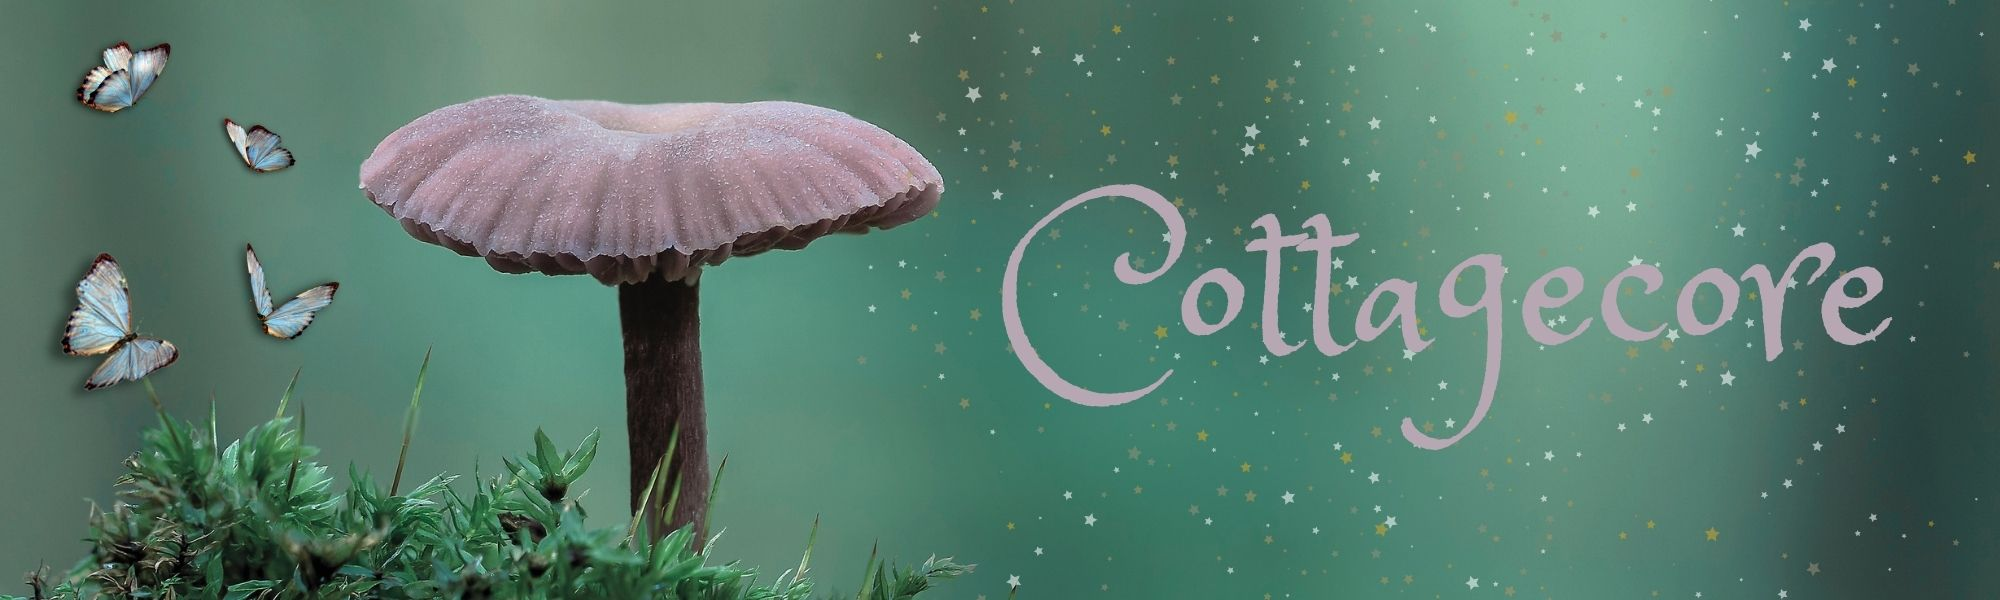 cottagecore aesthetic graphic with pale pink mushroom and magic sparkles and whimsical writing